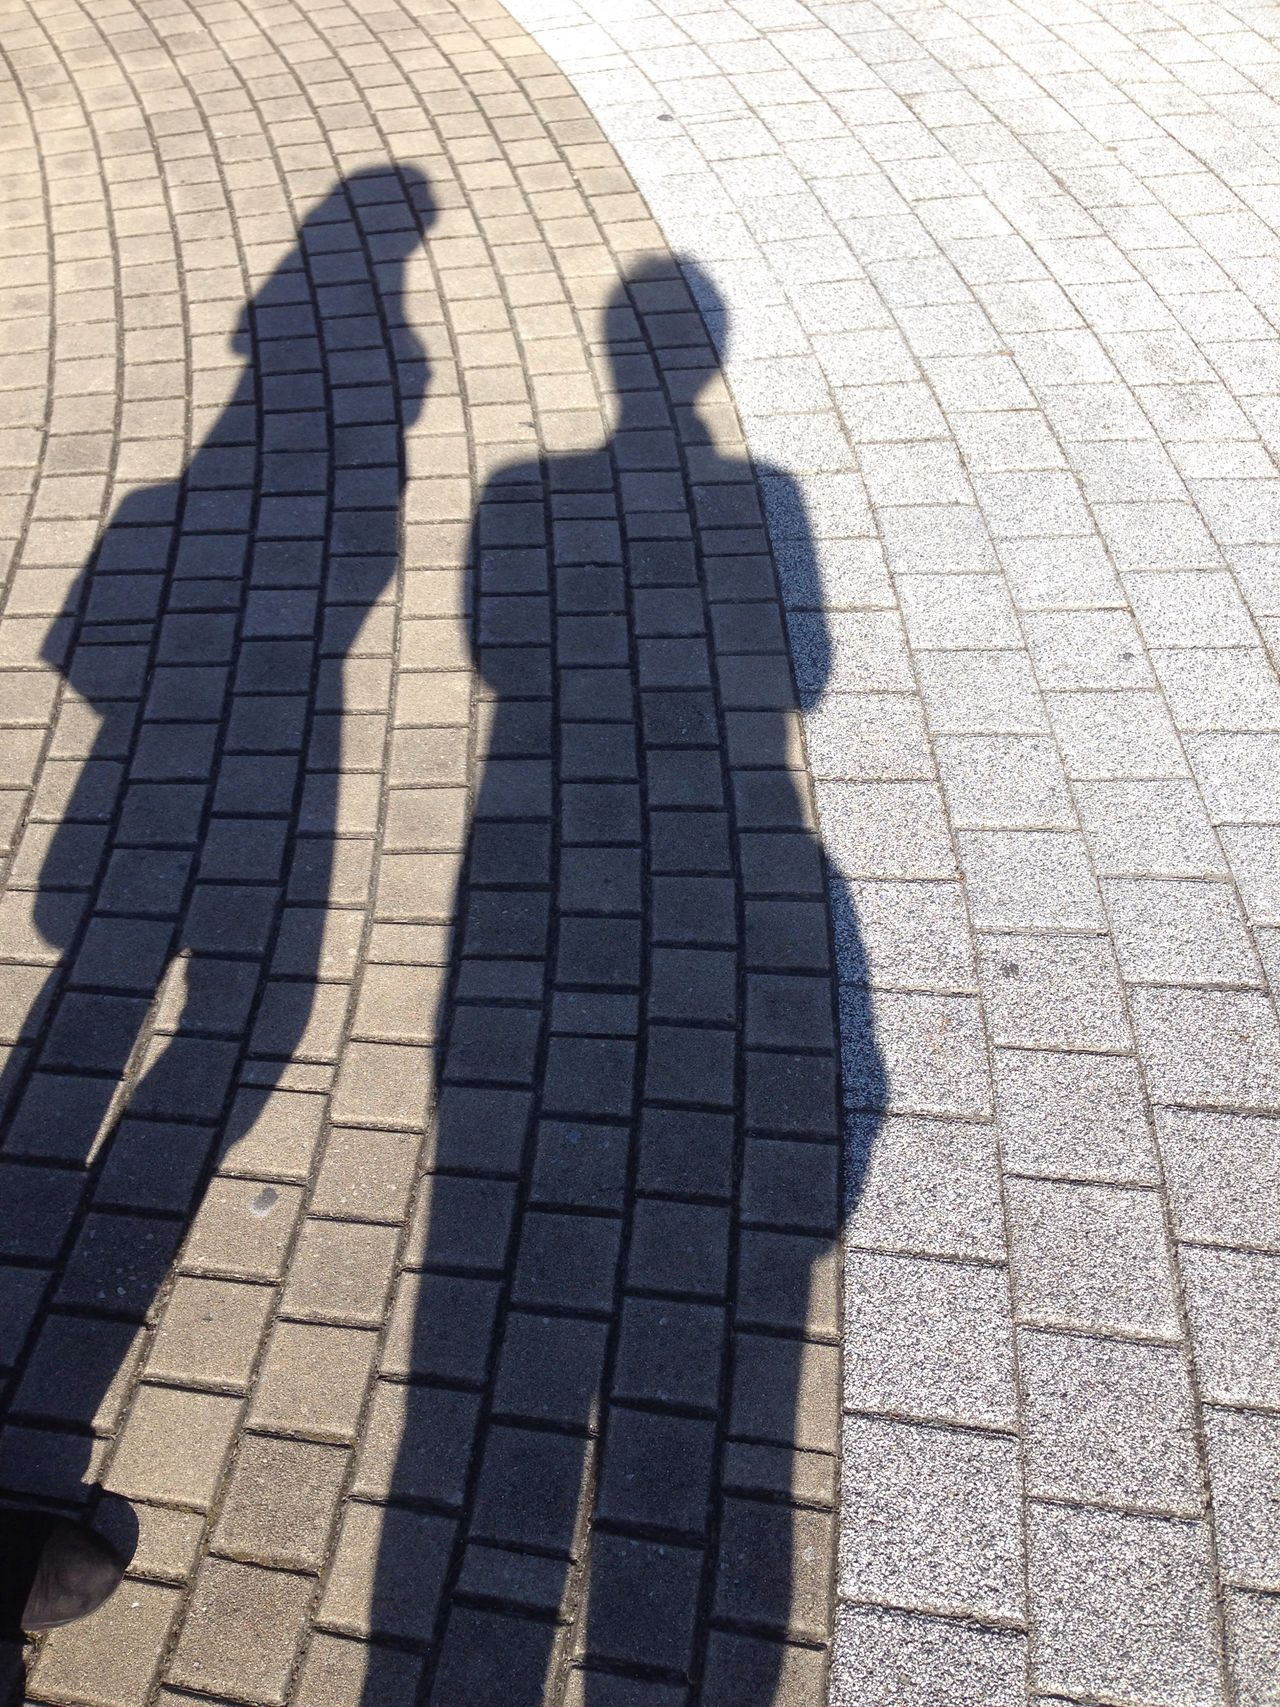 Couple Day Elevated View Focus On Shadow Footpath Ground Leisure Activity Lifestyles Outdoors Pavement Repetition Shadow Side By Side Sunlight Sunny Unrecognizable Person